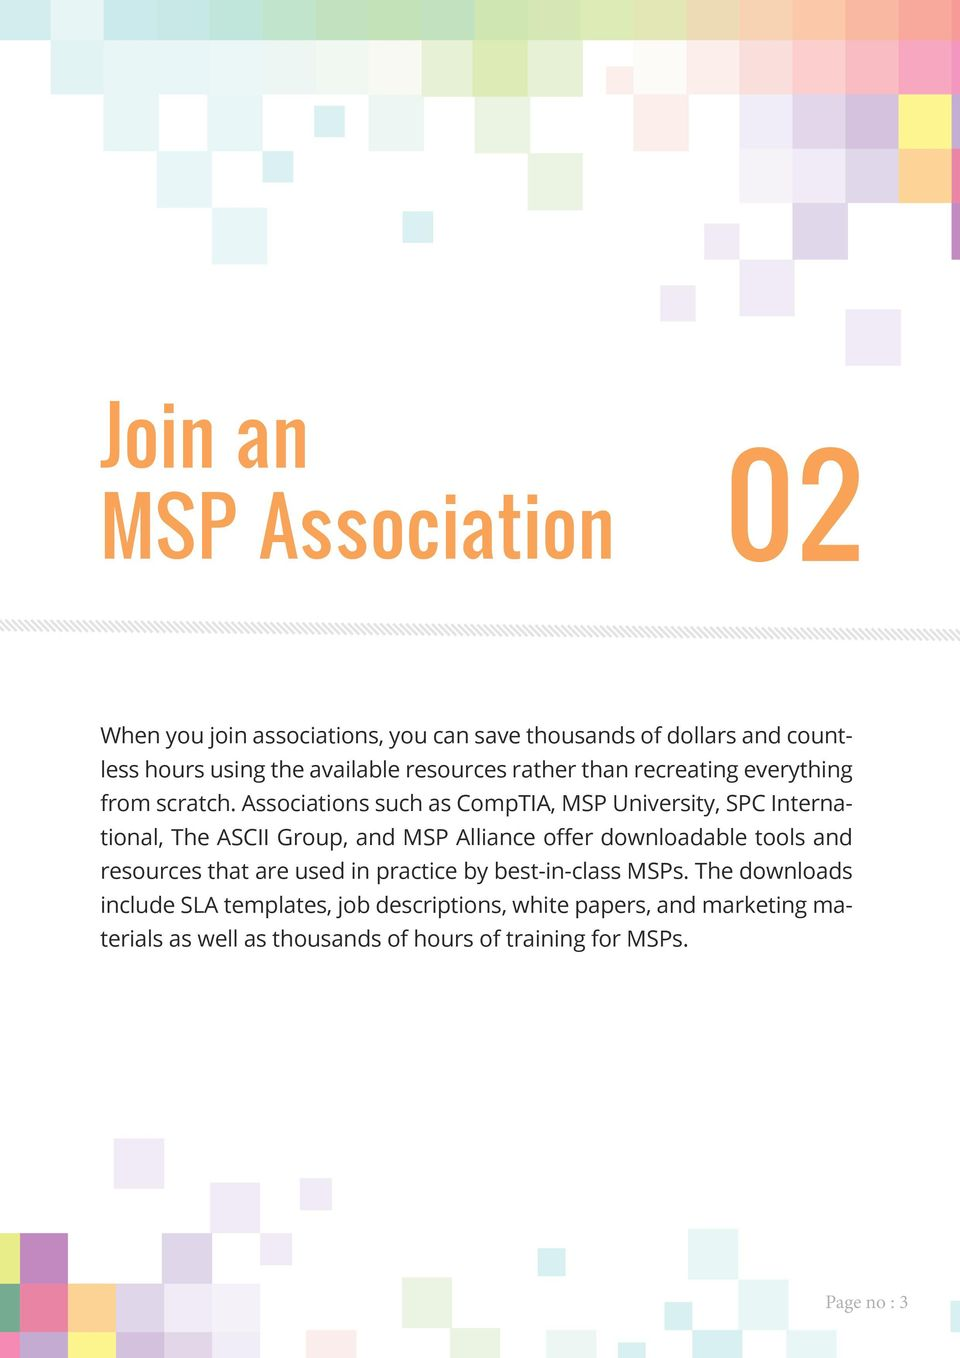 Associations such as CompTIA, MSP University, SPC International, The ASCII Group, and MSP Alliance offer downloadable tools and